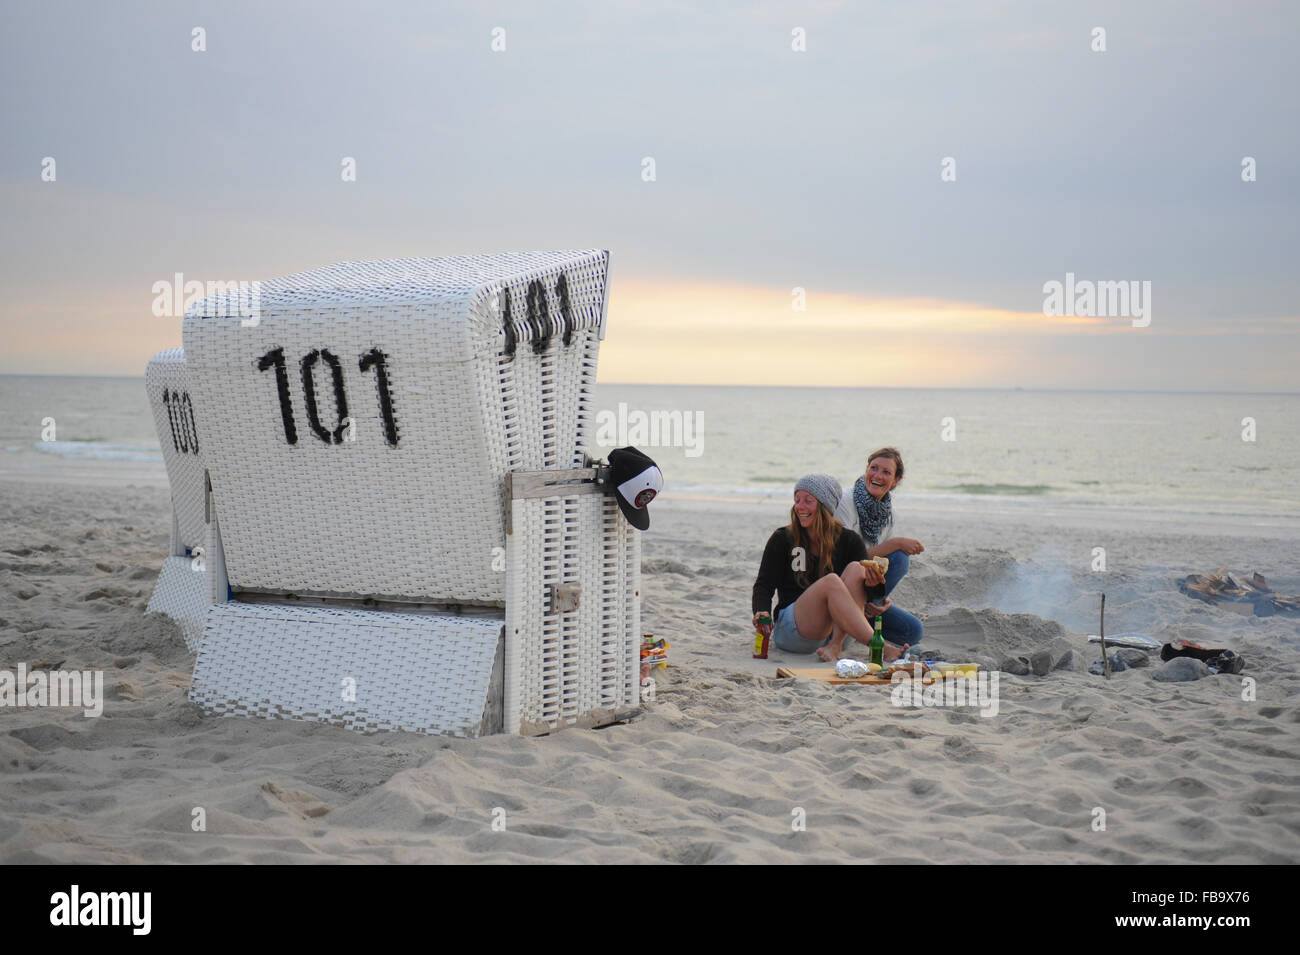 Sylt Strandkorb Strandkorb Beach Chair And Young People Having Picnic At Sunset On